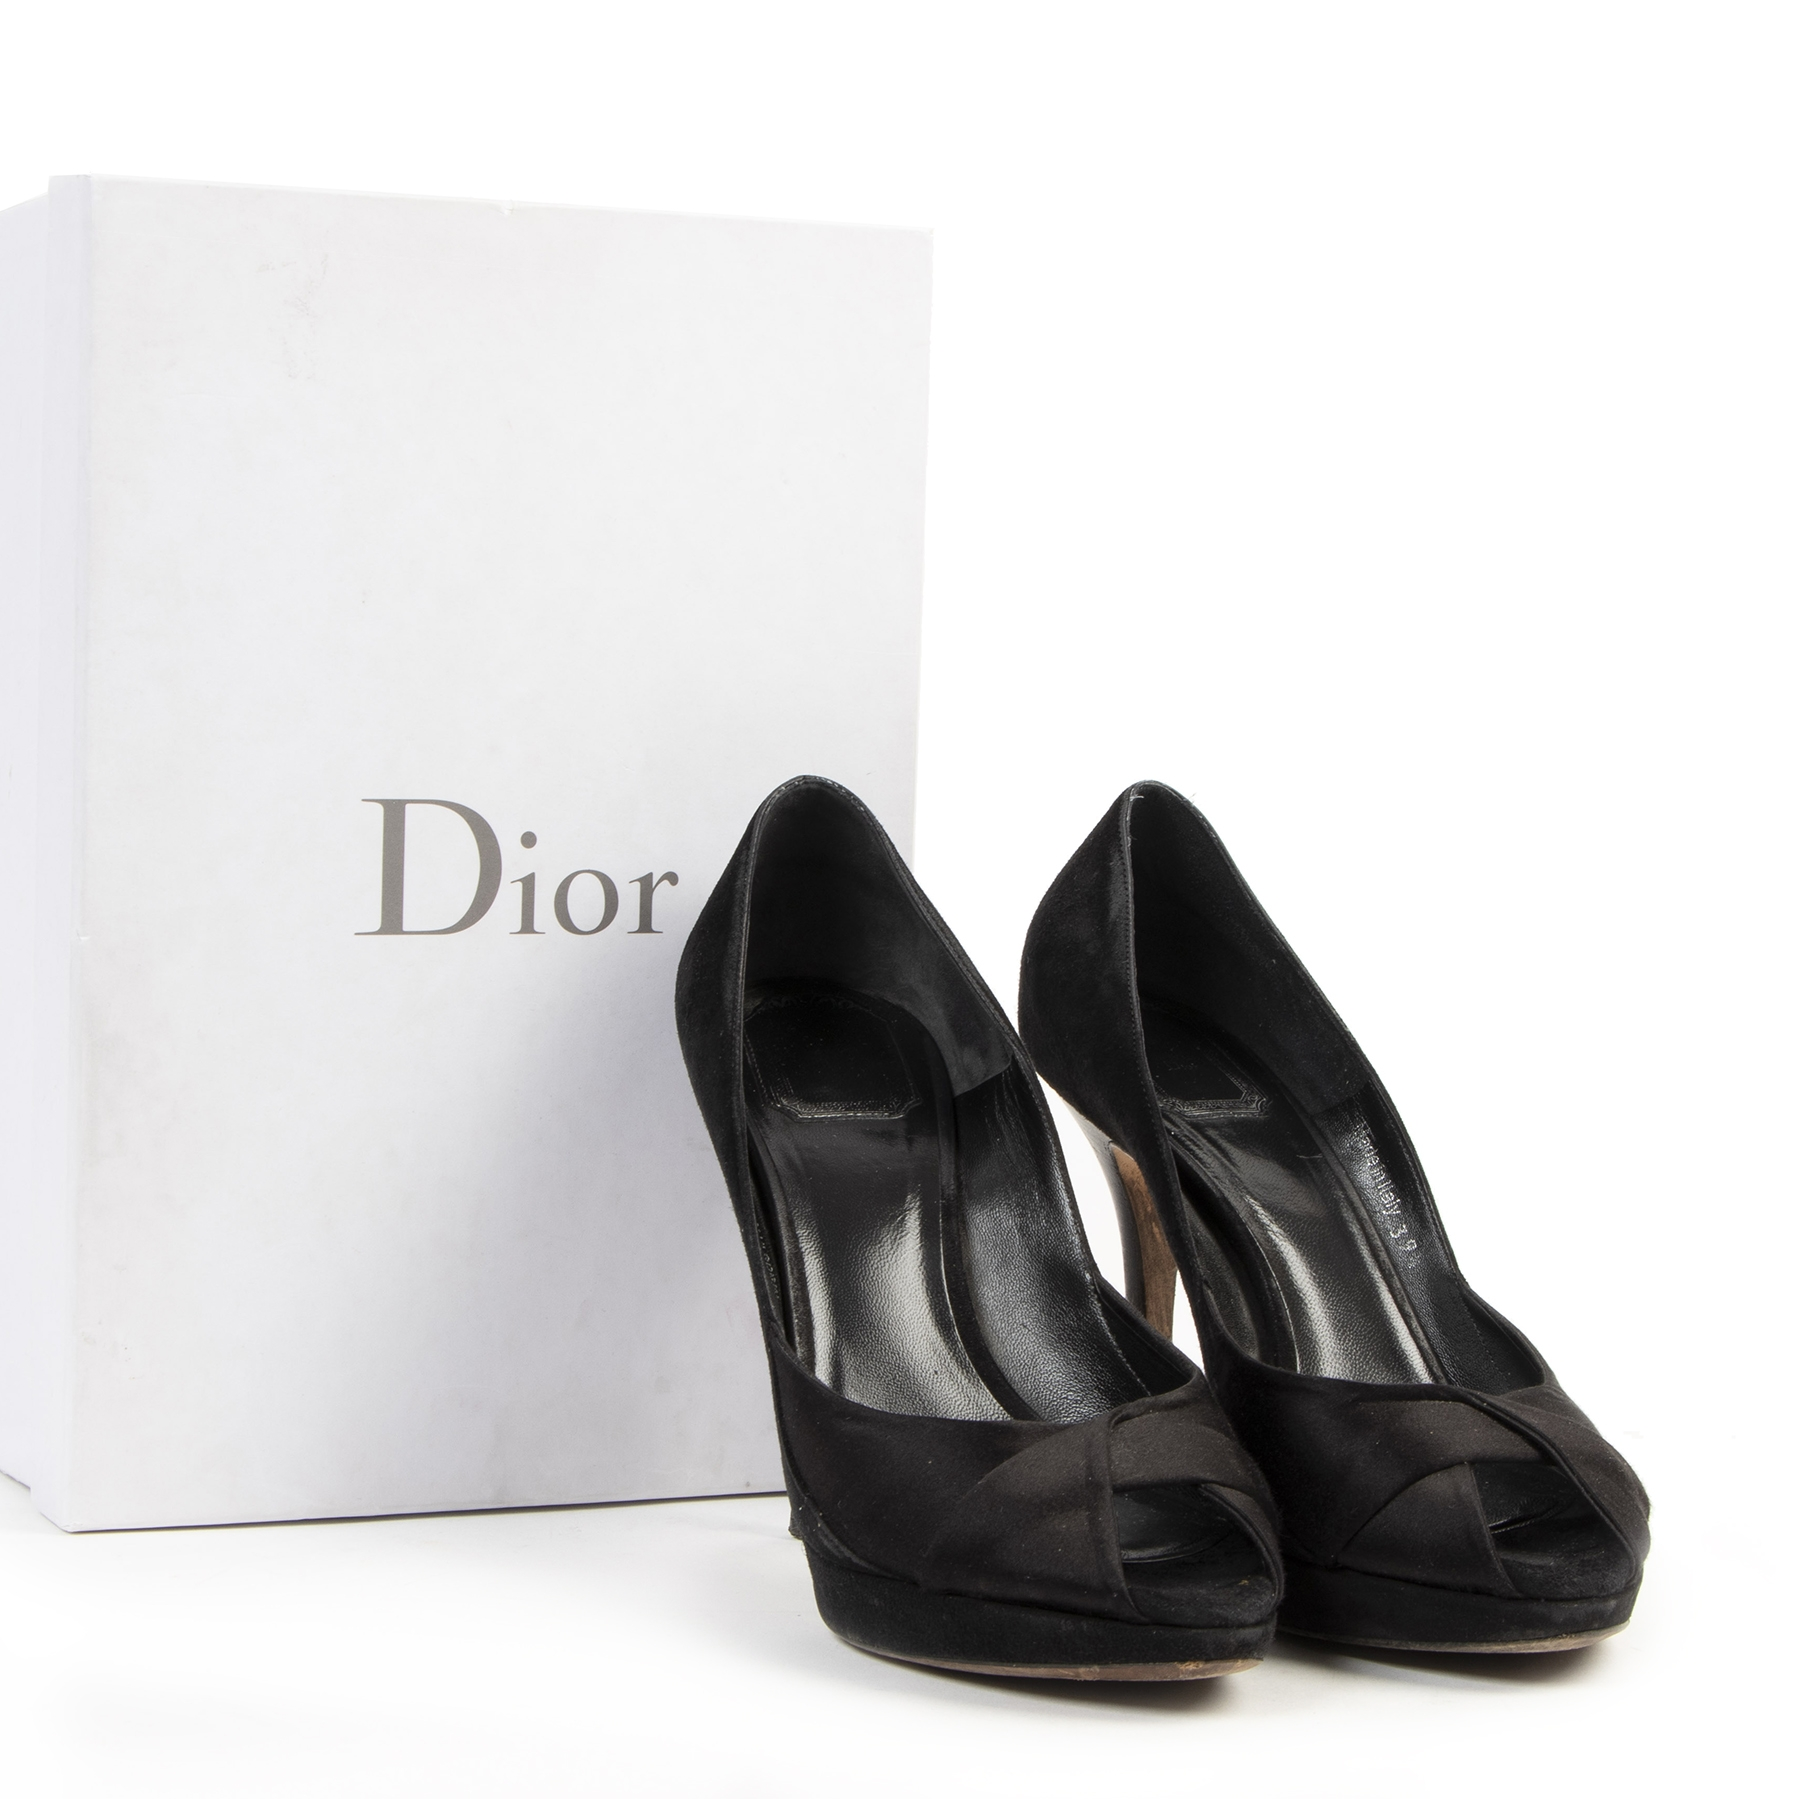 Authentic secondhand Dior Black Open Toe Heels - size 39,5 designer pumps shoes accessories fashion luxury vintage webshop safe secure online shopping wordwide shipping designer high end brands